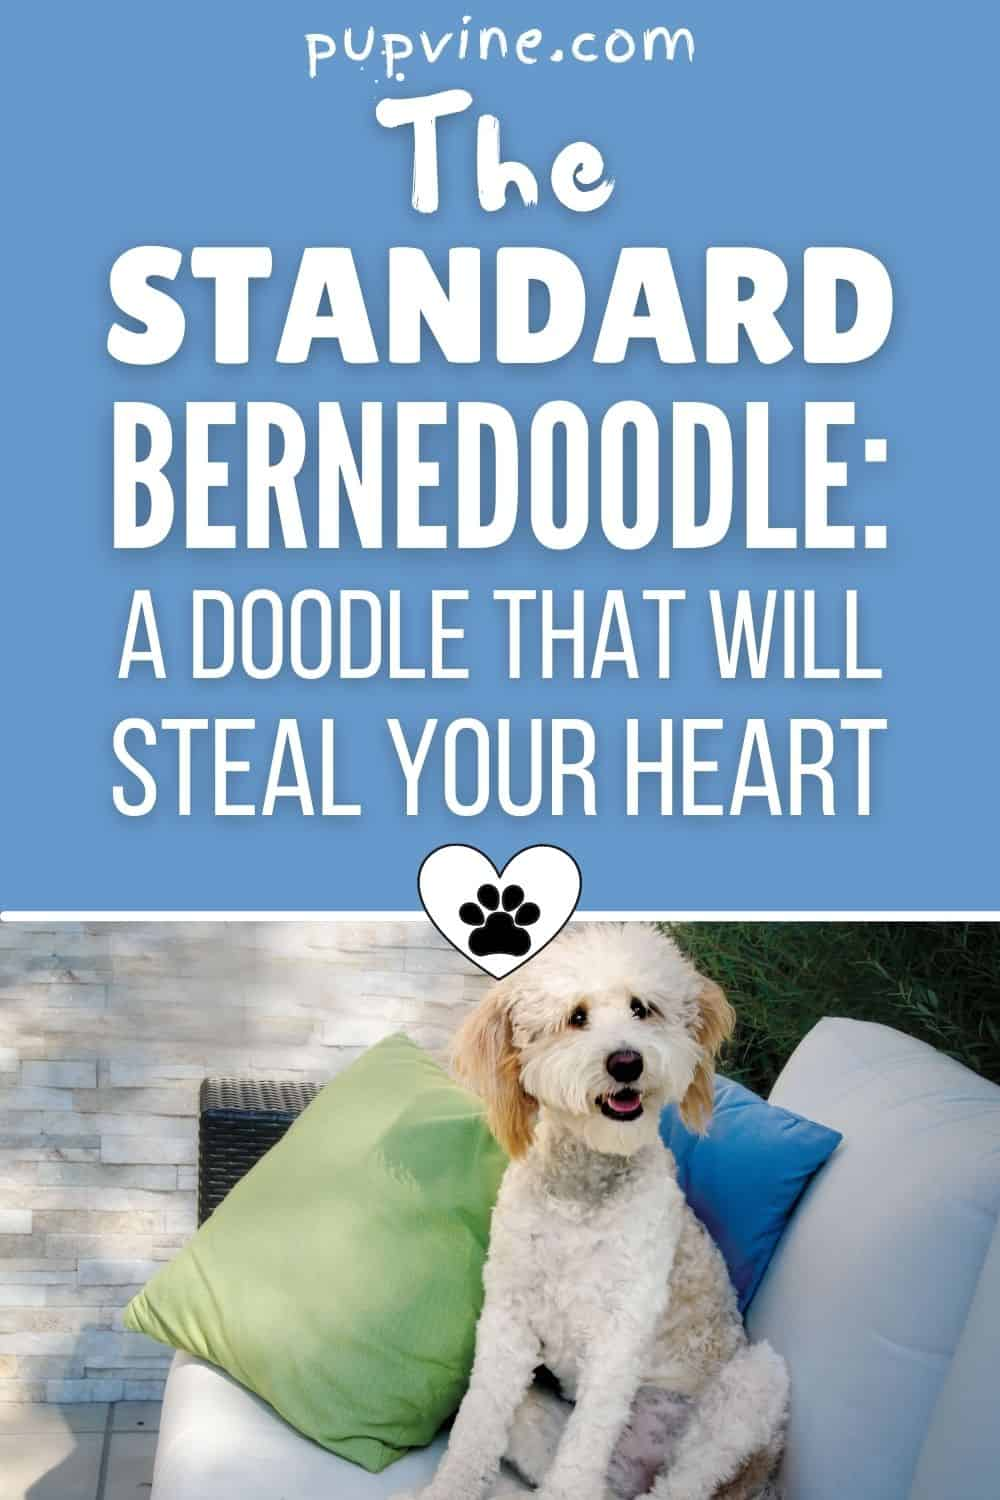 The Standard Bernedoodle: A Doodle That Will Steal Your Heart